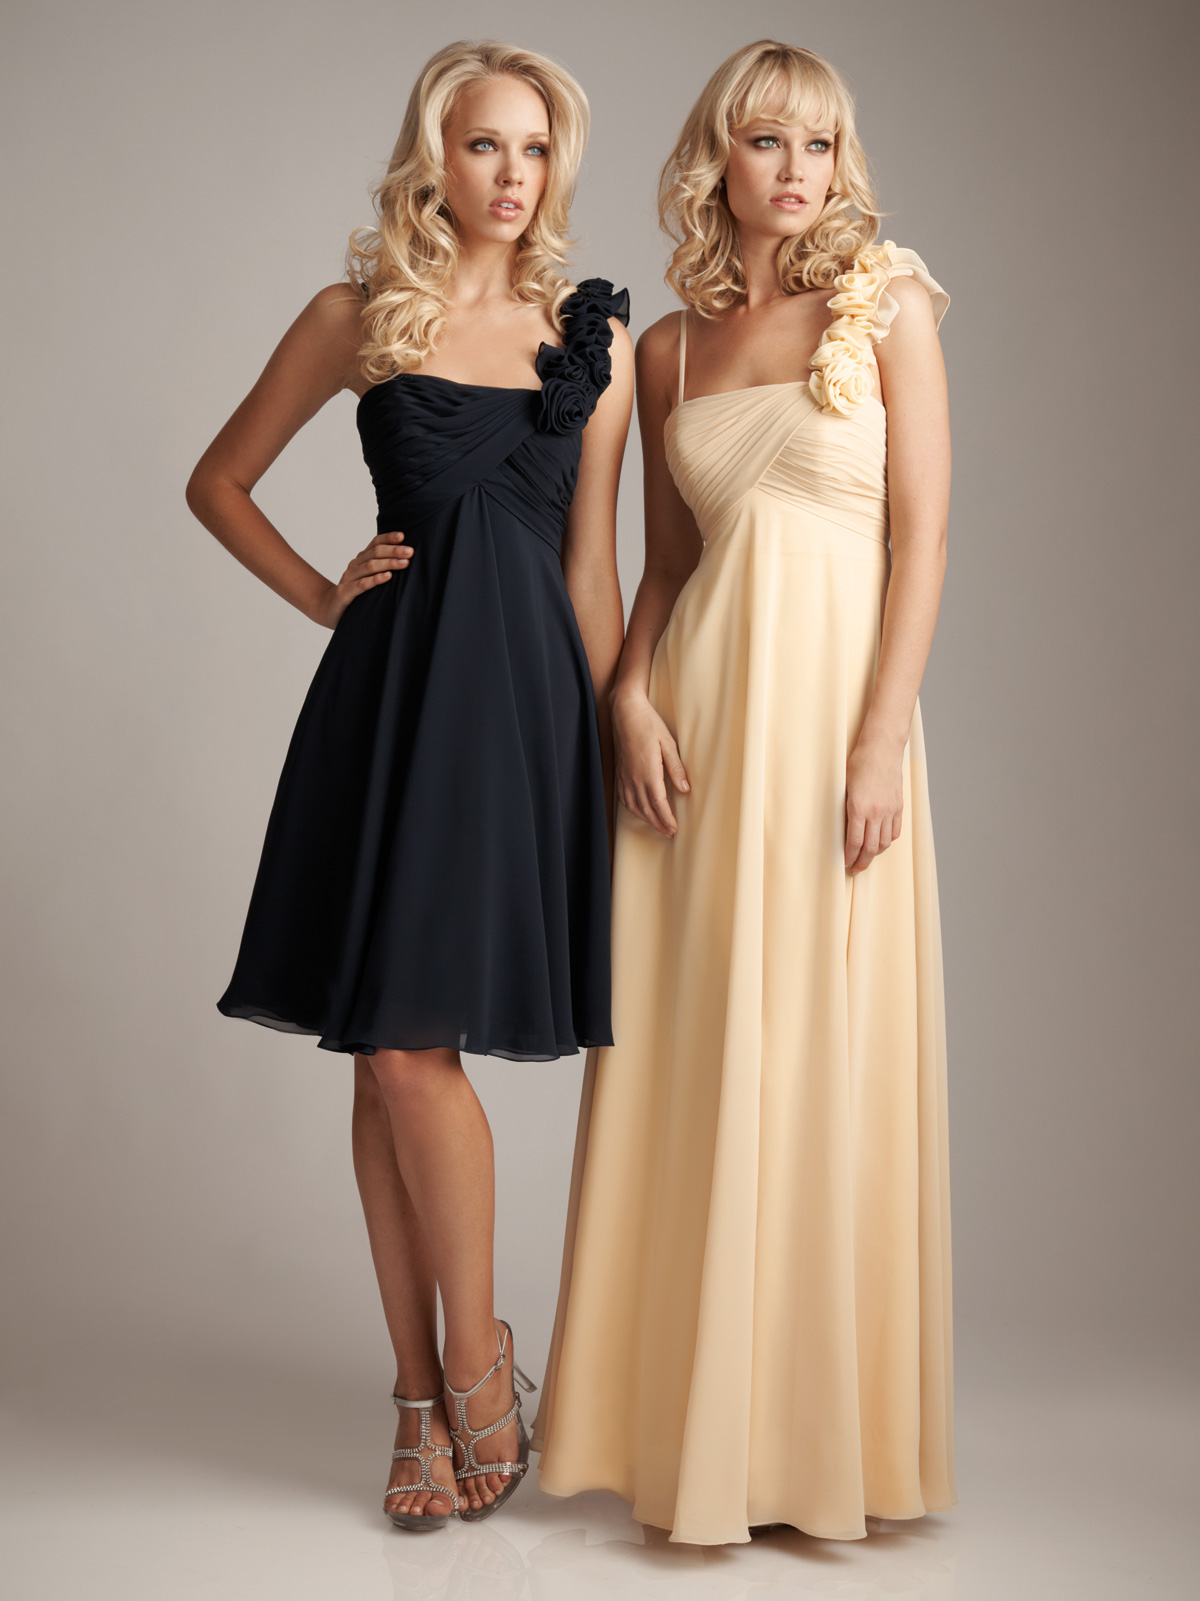 Persimmon Bridesmaid Dresses One Shoulder Chiffon Flower Trim Strap